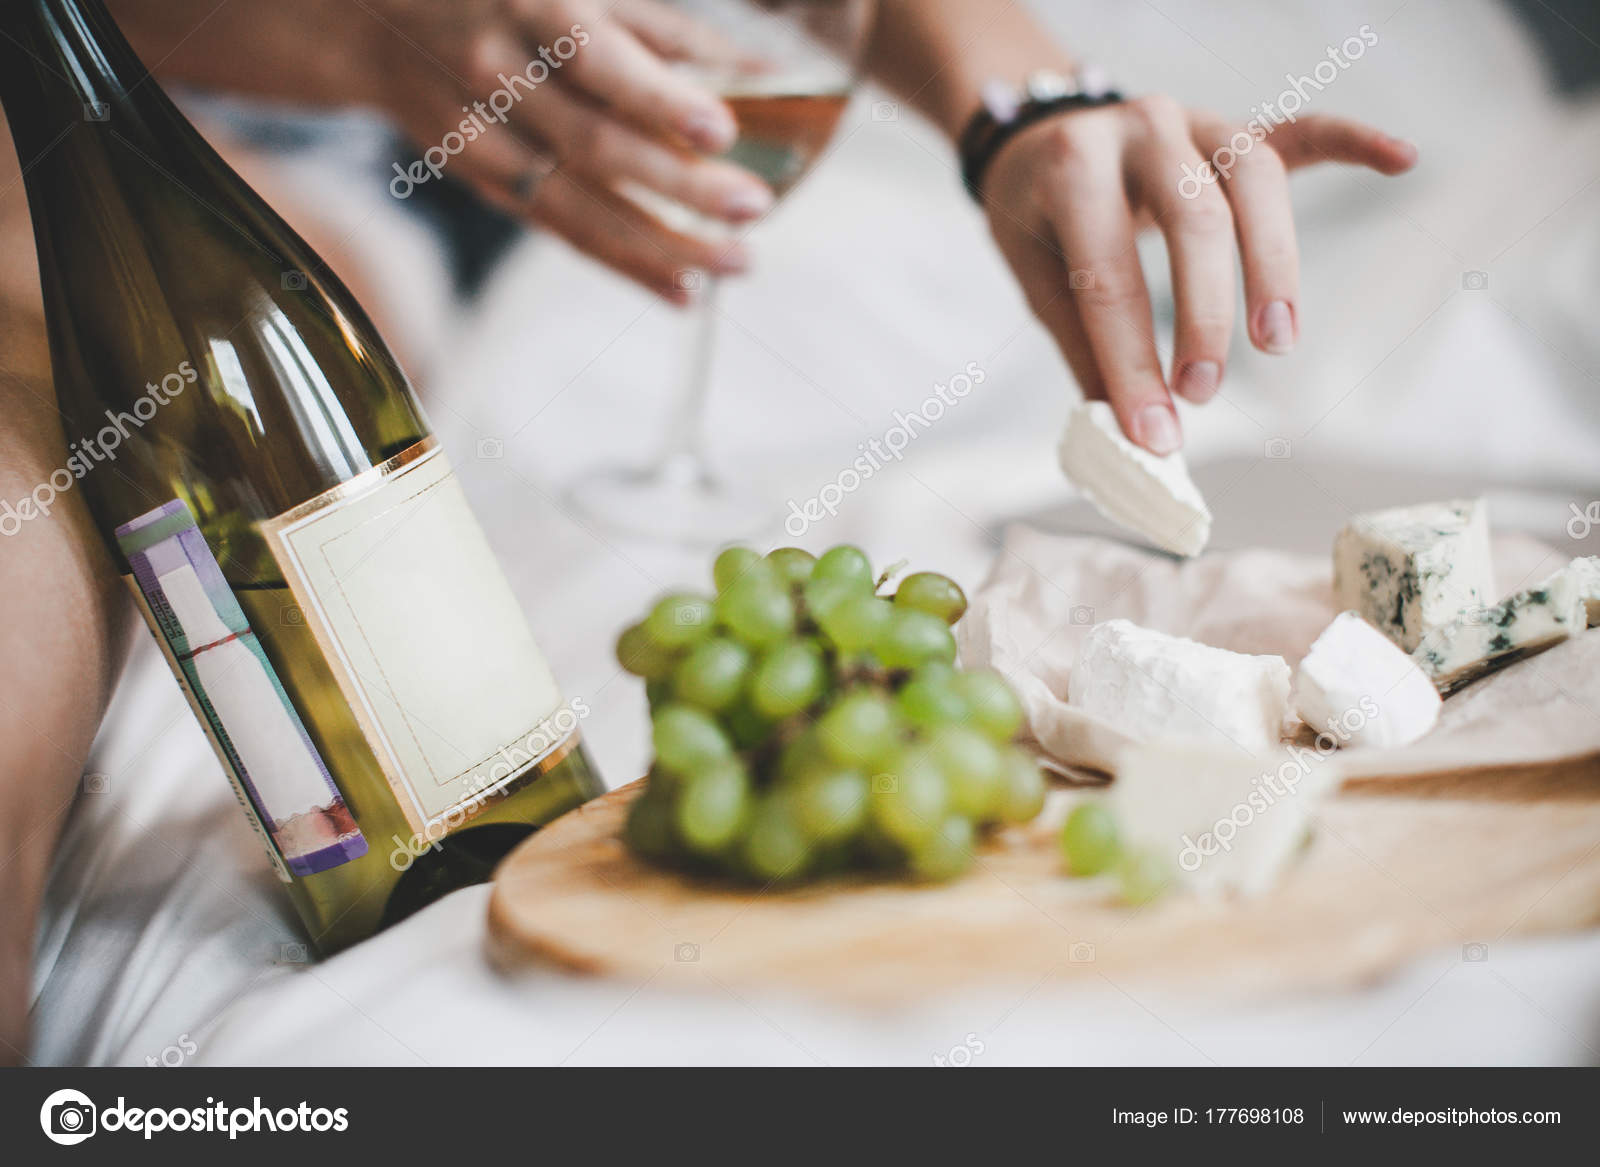 Grapes Bottle White Wine Cheese Plate Lunch Bedroom \u2014 Stock Photo & Grapes Bottle White Wine Cheese Plate Lunch Bedroom \u2014 Stock Photo ...